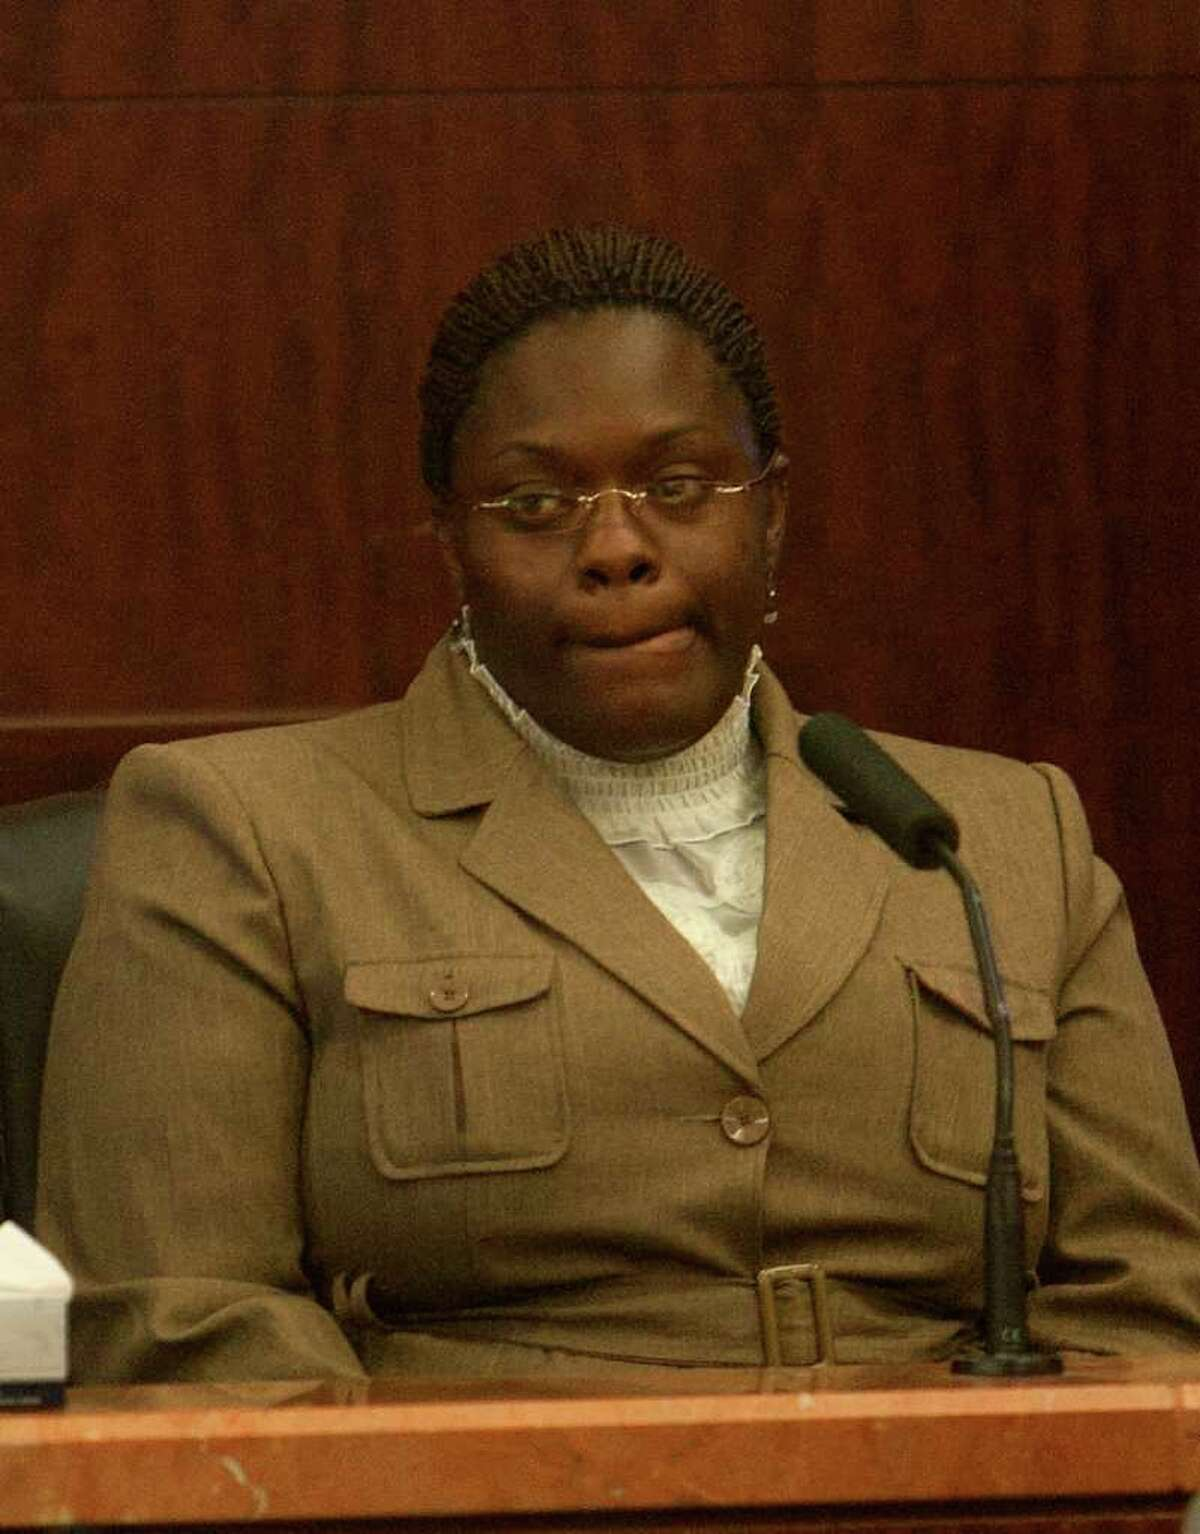 Tyonne Palmer, 32, was convicted of tampering with evidence and murder.